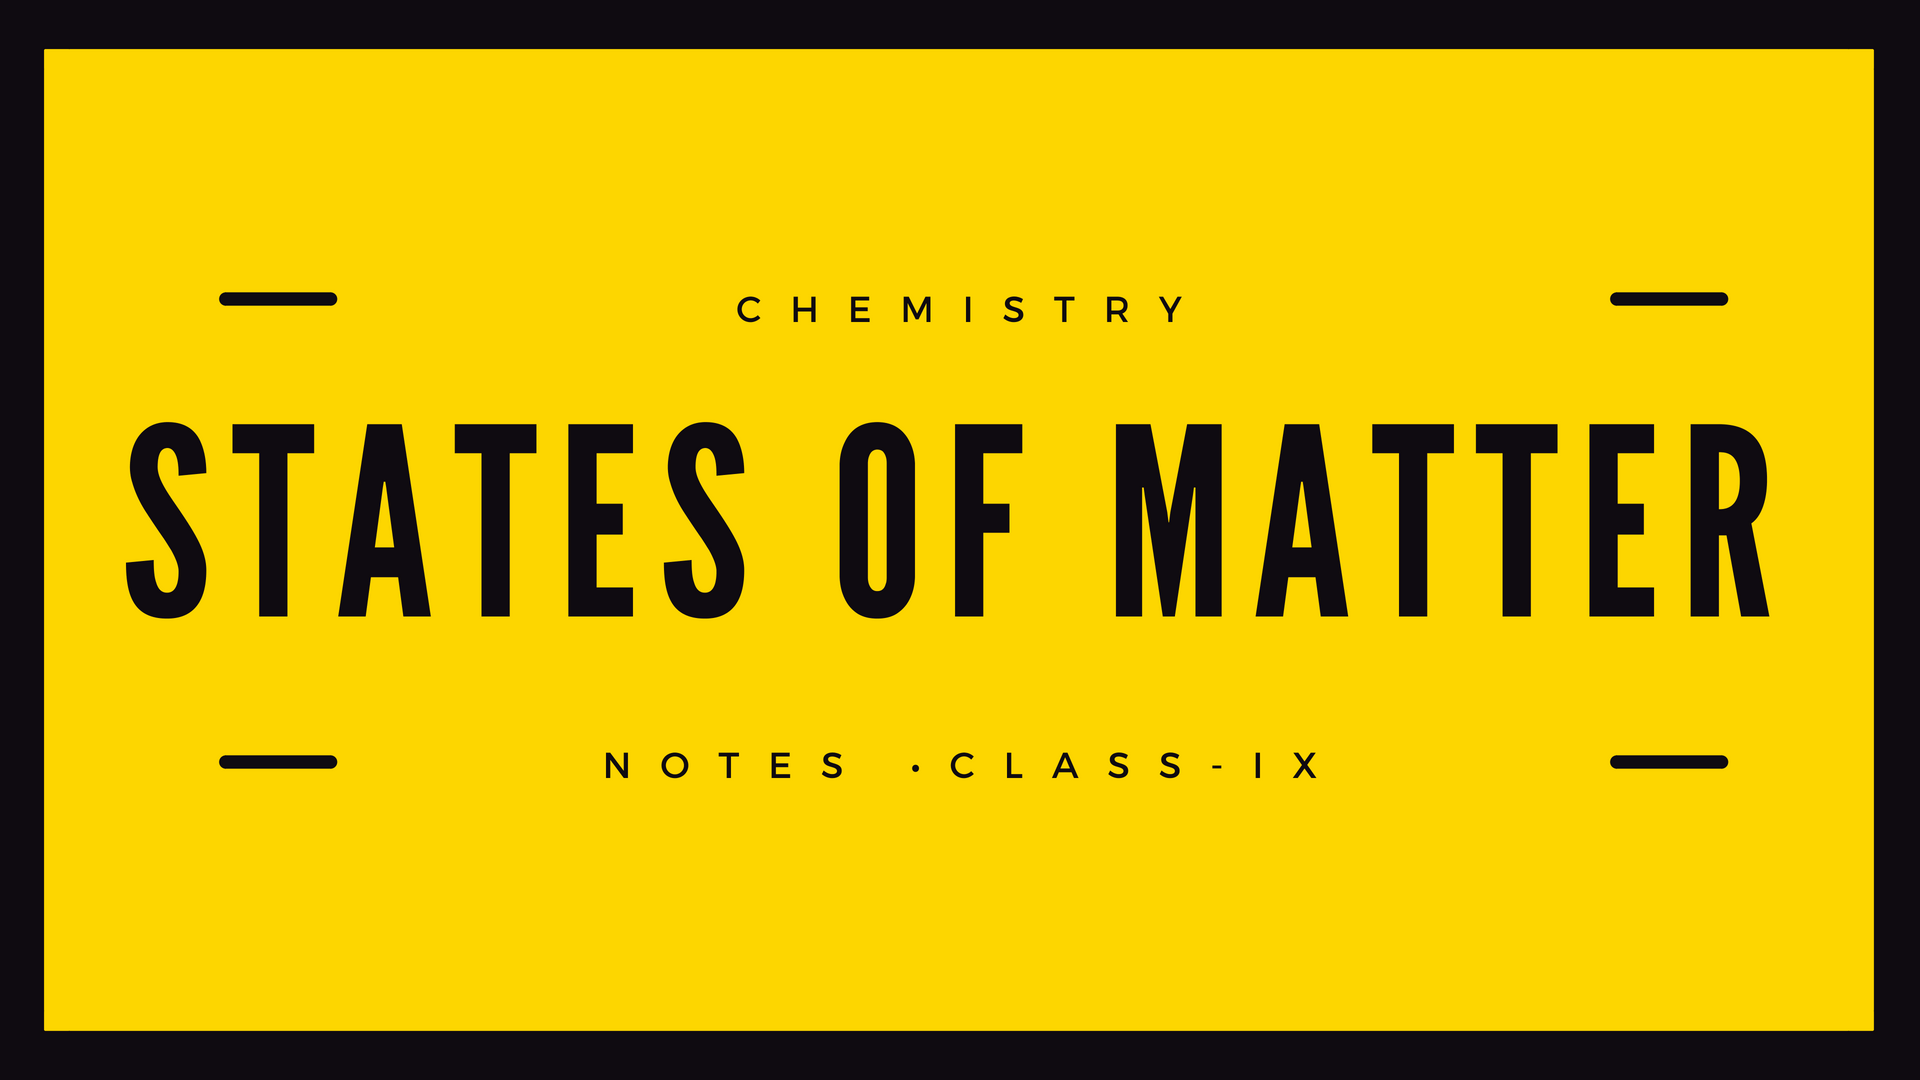 cbse science states of matter